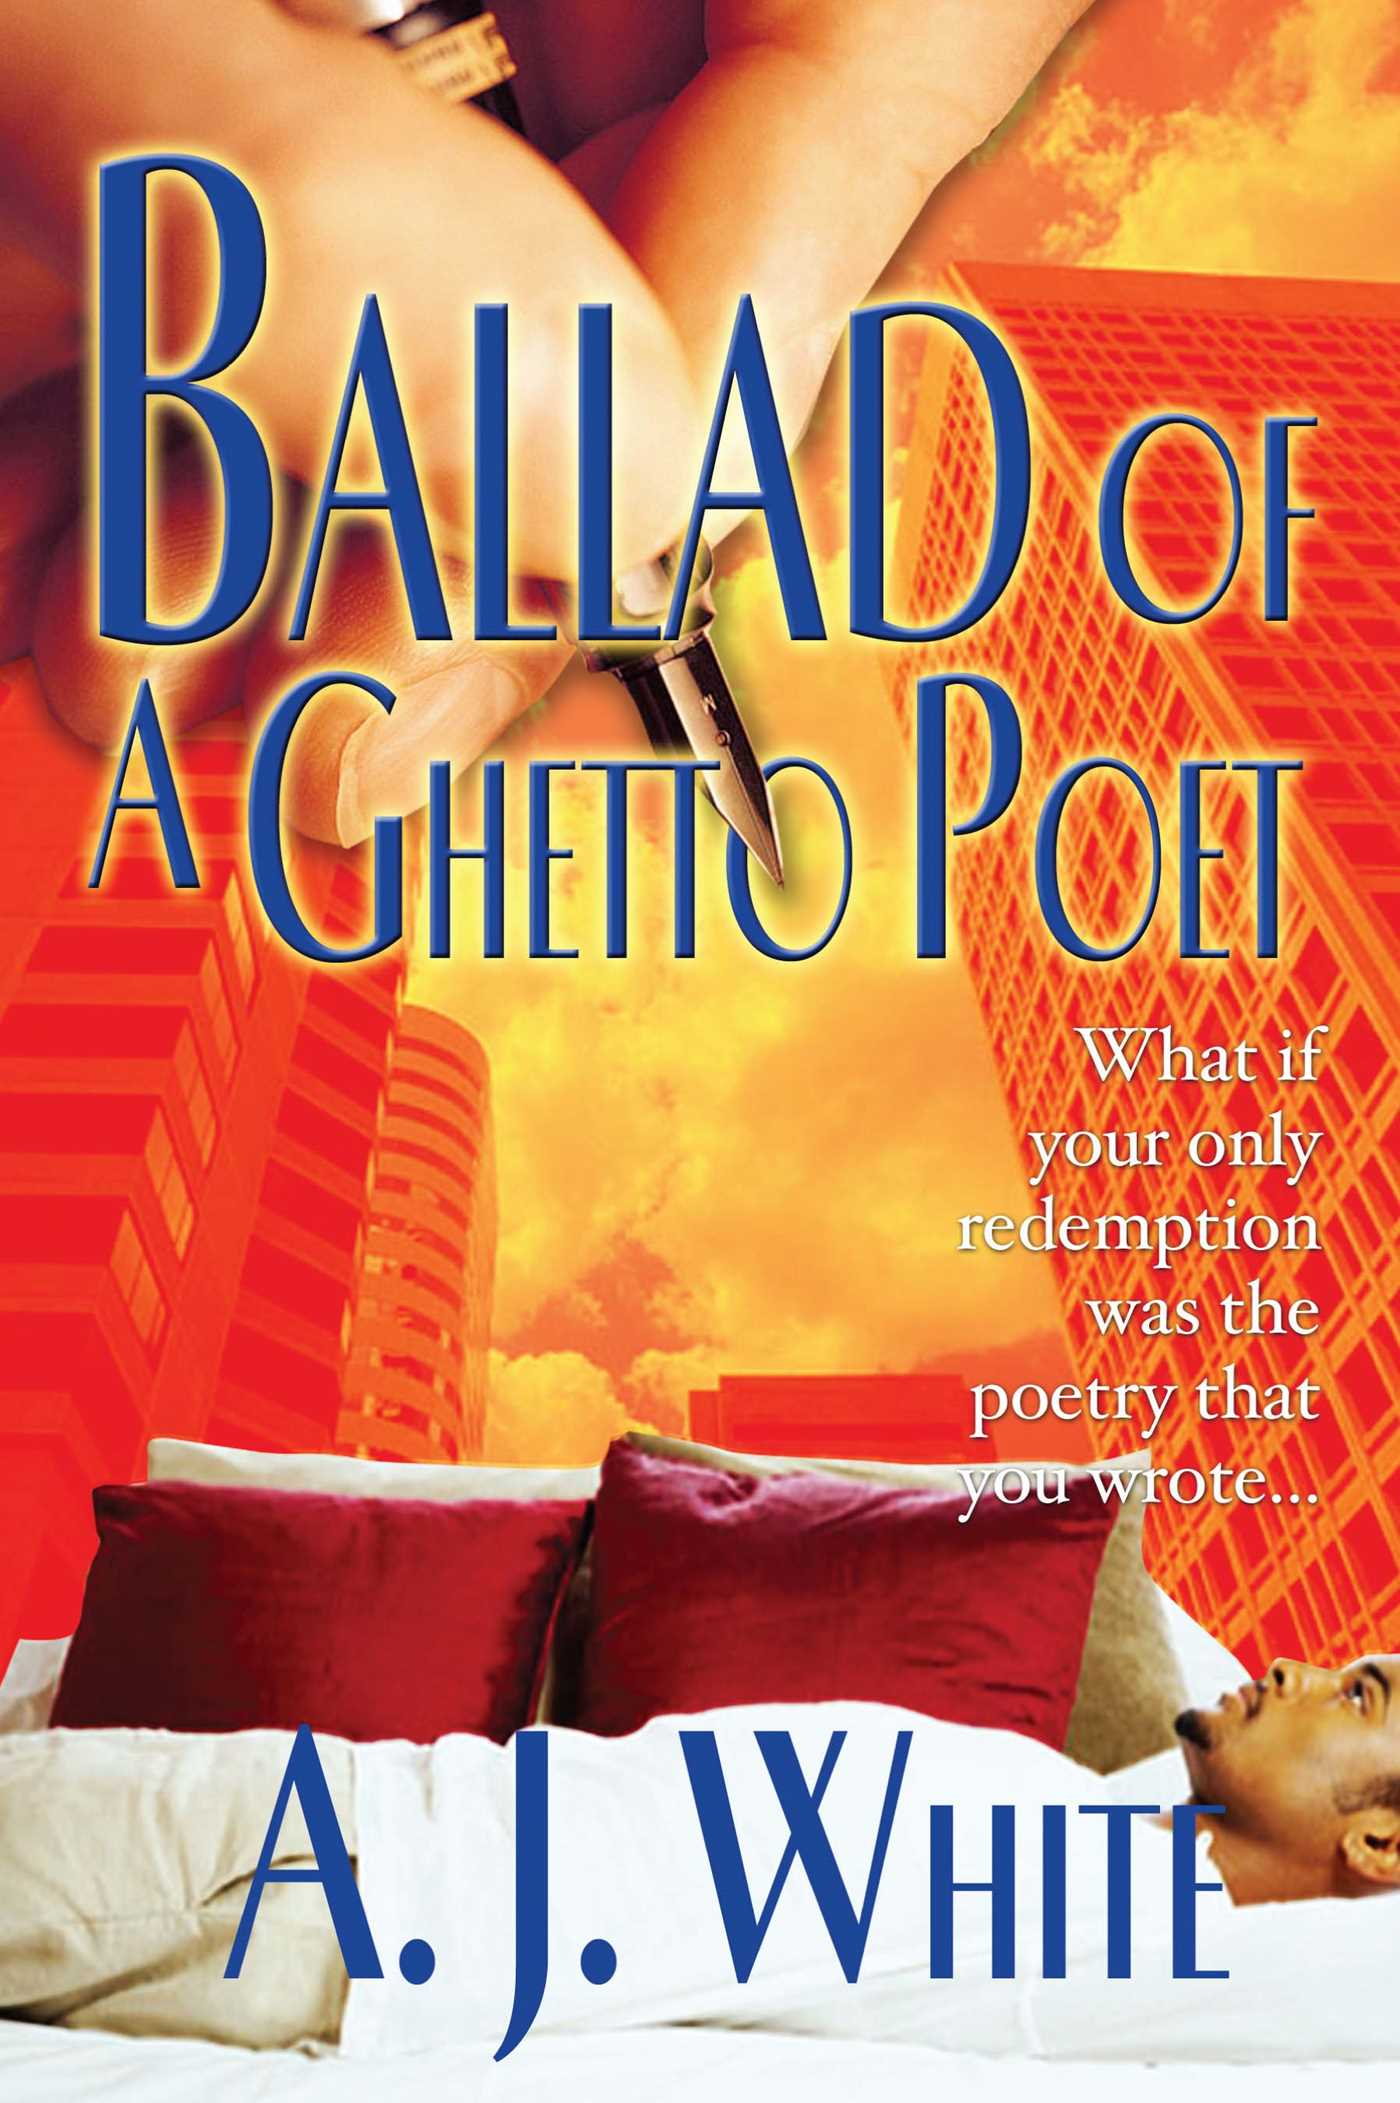 Ballad-of-a-ghetto-poet-9781593090098_hr